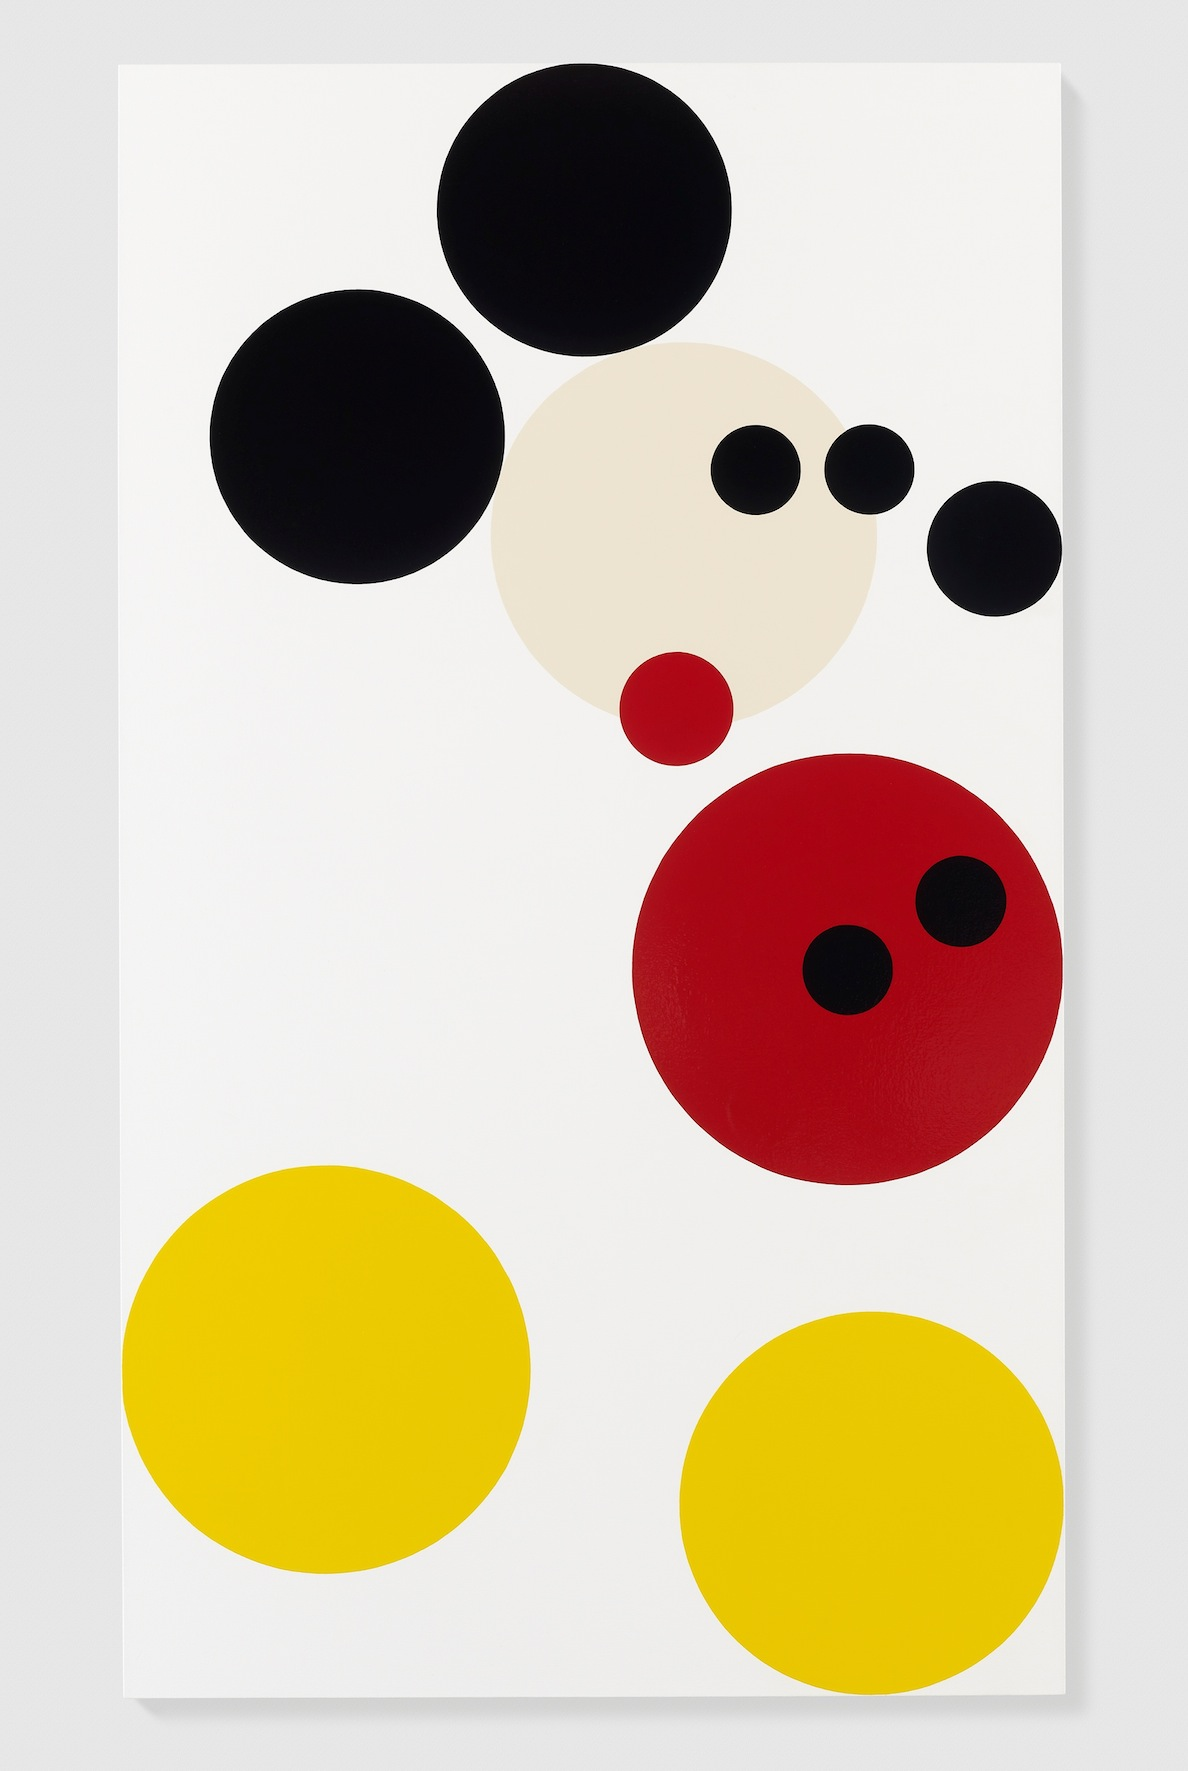 Damien Hirst, Mickey, 2013, vernice su tela, 182.9x105.4 cm, Photo by Prudence Cuming Associates © Damien Hirst and Science Ltd. All rights reserved, DACS 2013